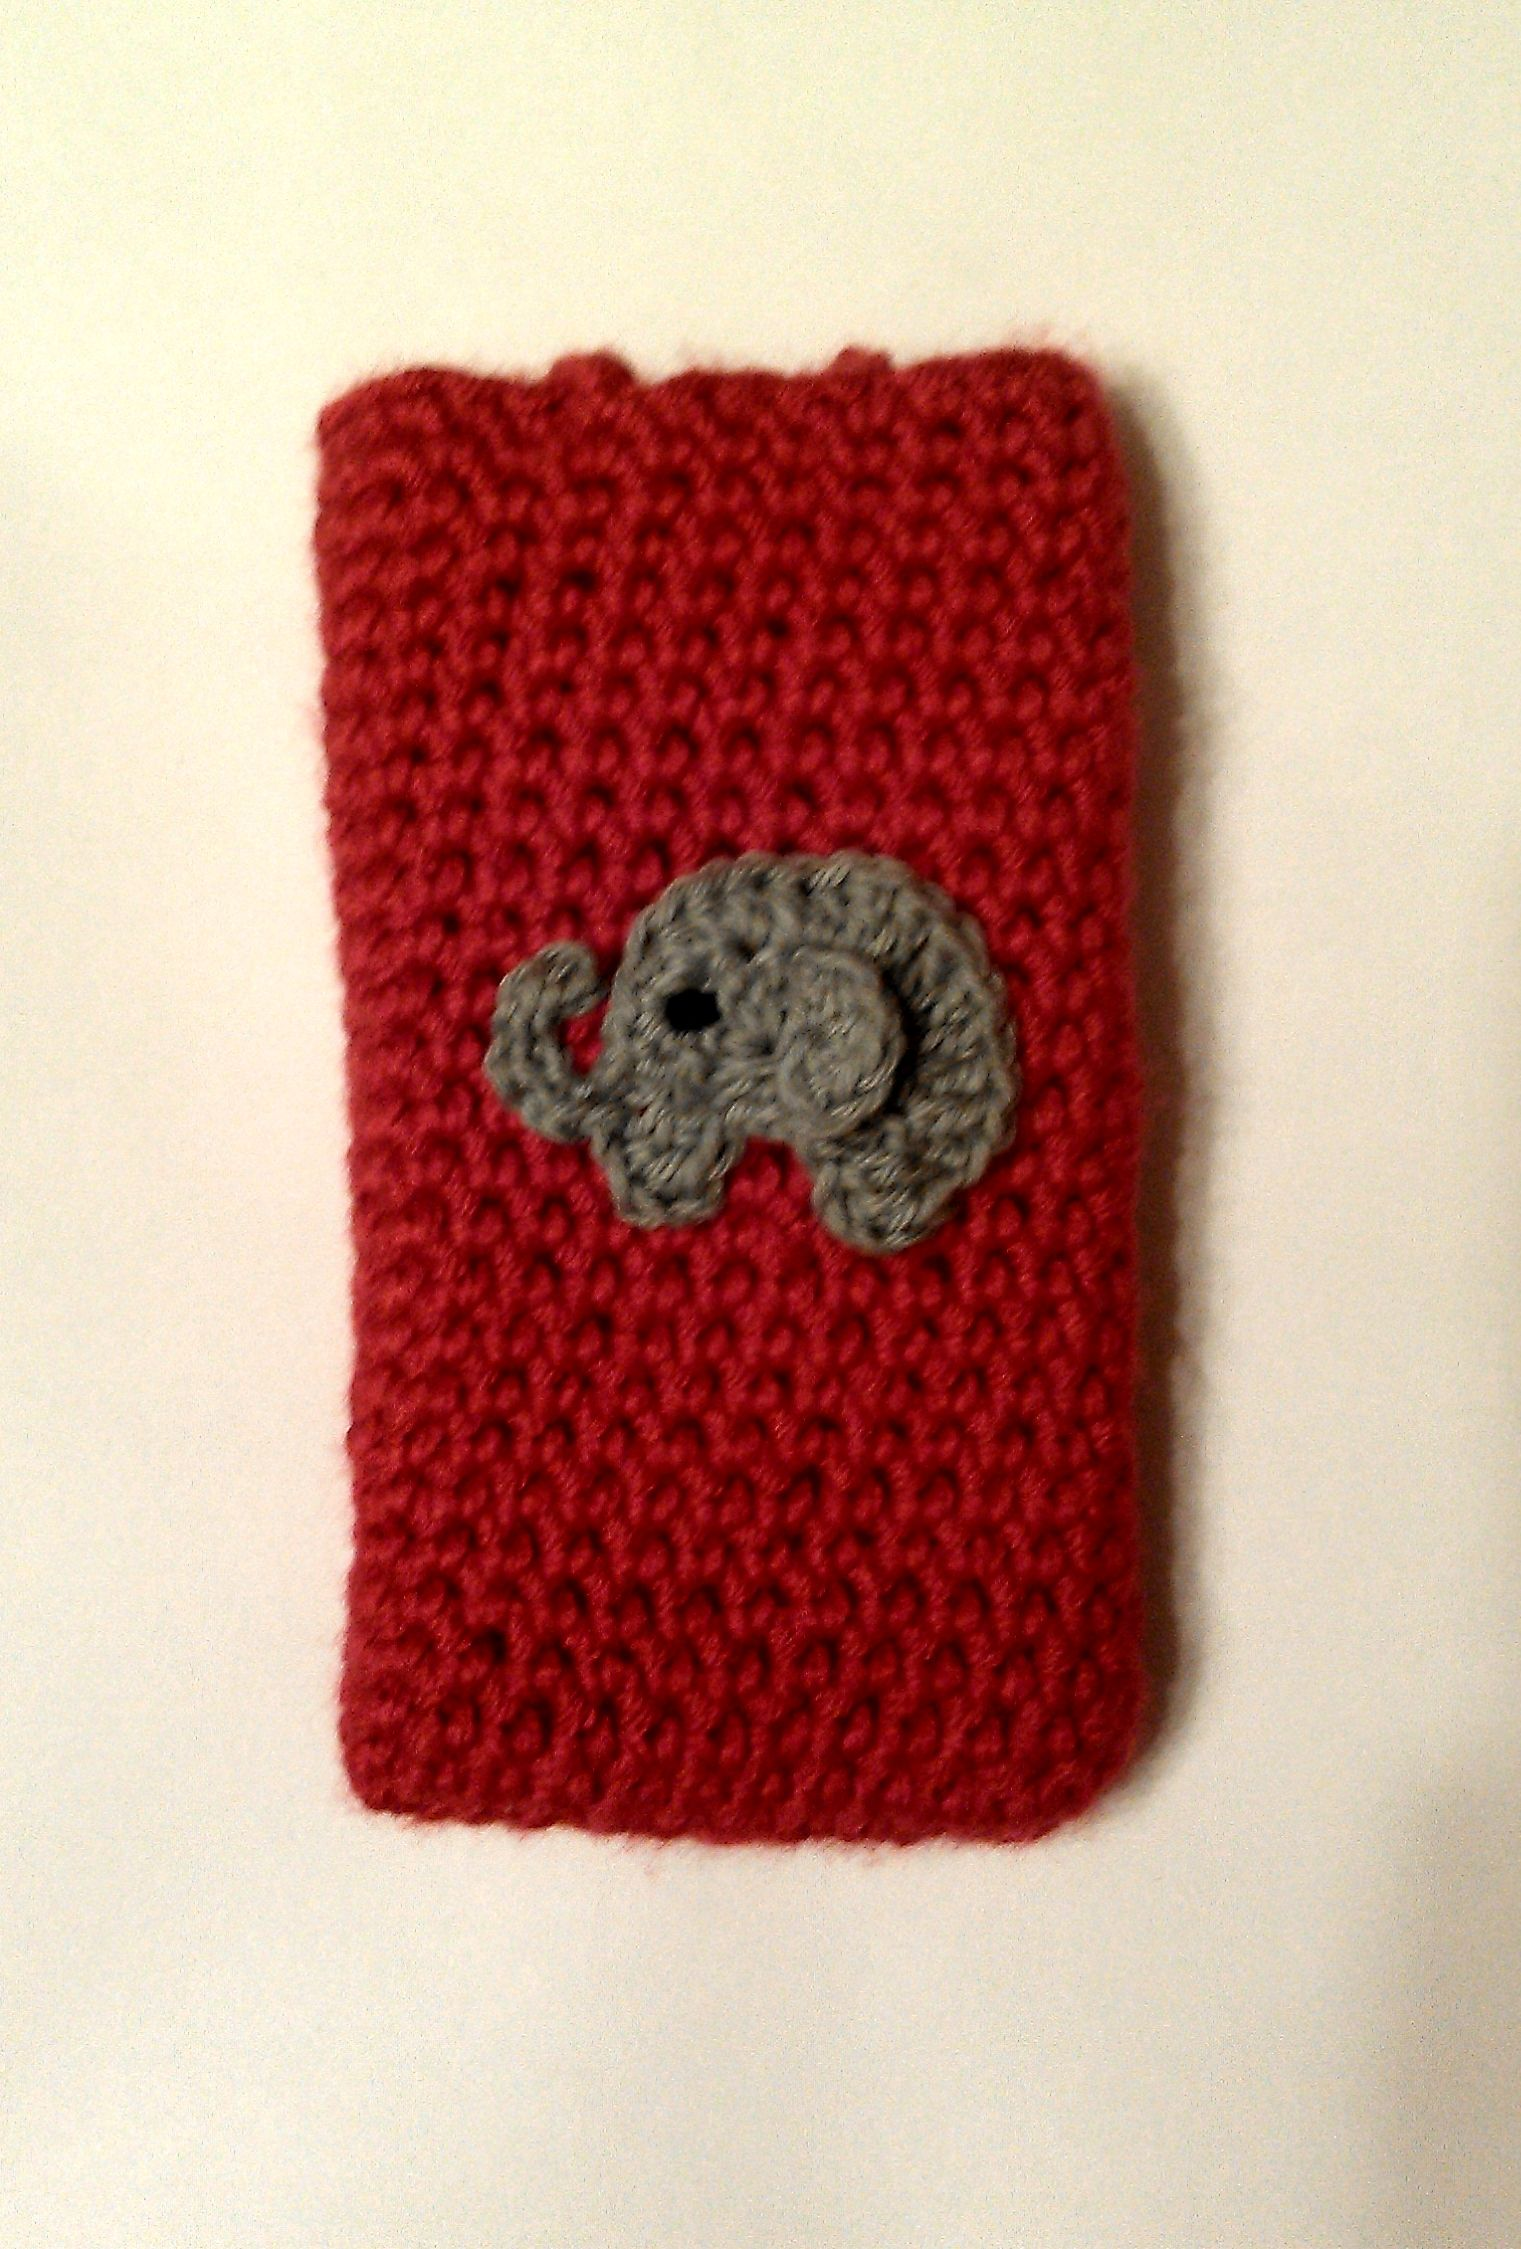 Alabama themed cell phone case i crocheted for my friend it has a alabama themed cell phone case i crocheted for my friend it has a white button holding it closed on the other side the pattern for it the elephant bankloansurffo Images